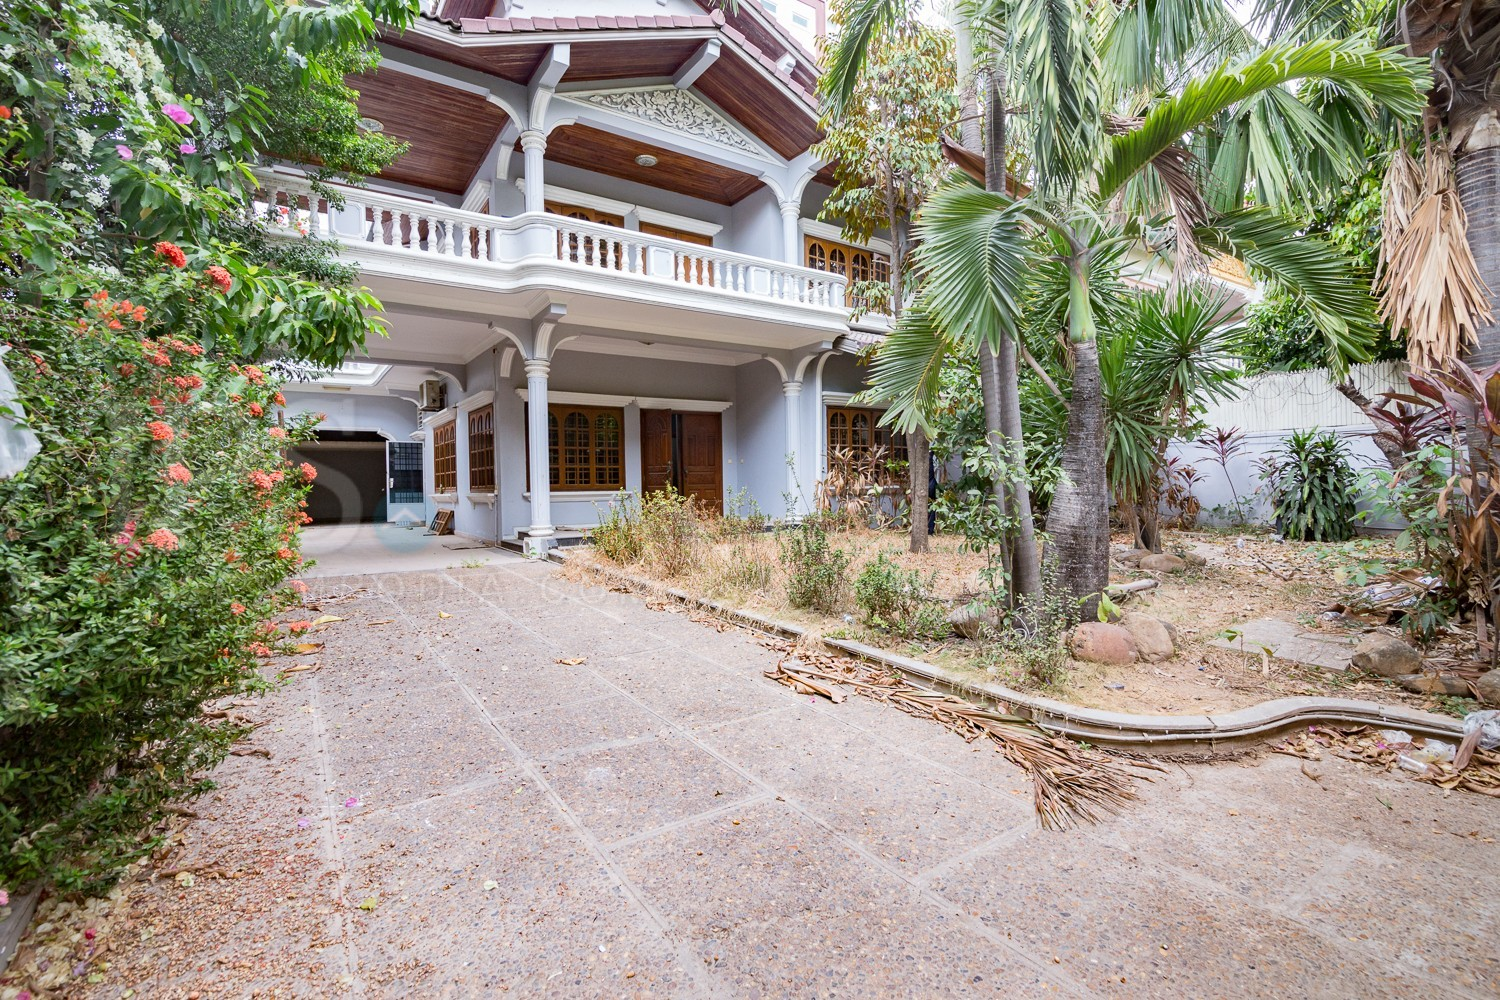 5 Bedrooms Villa For Rent - BKK1 , Phnom Penh